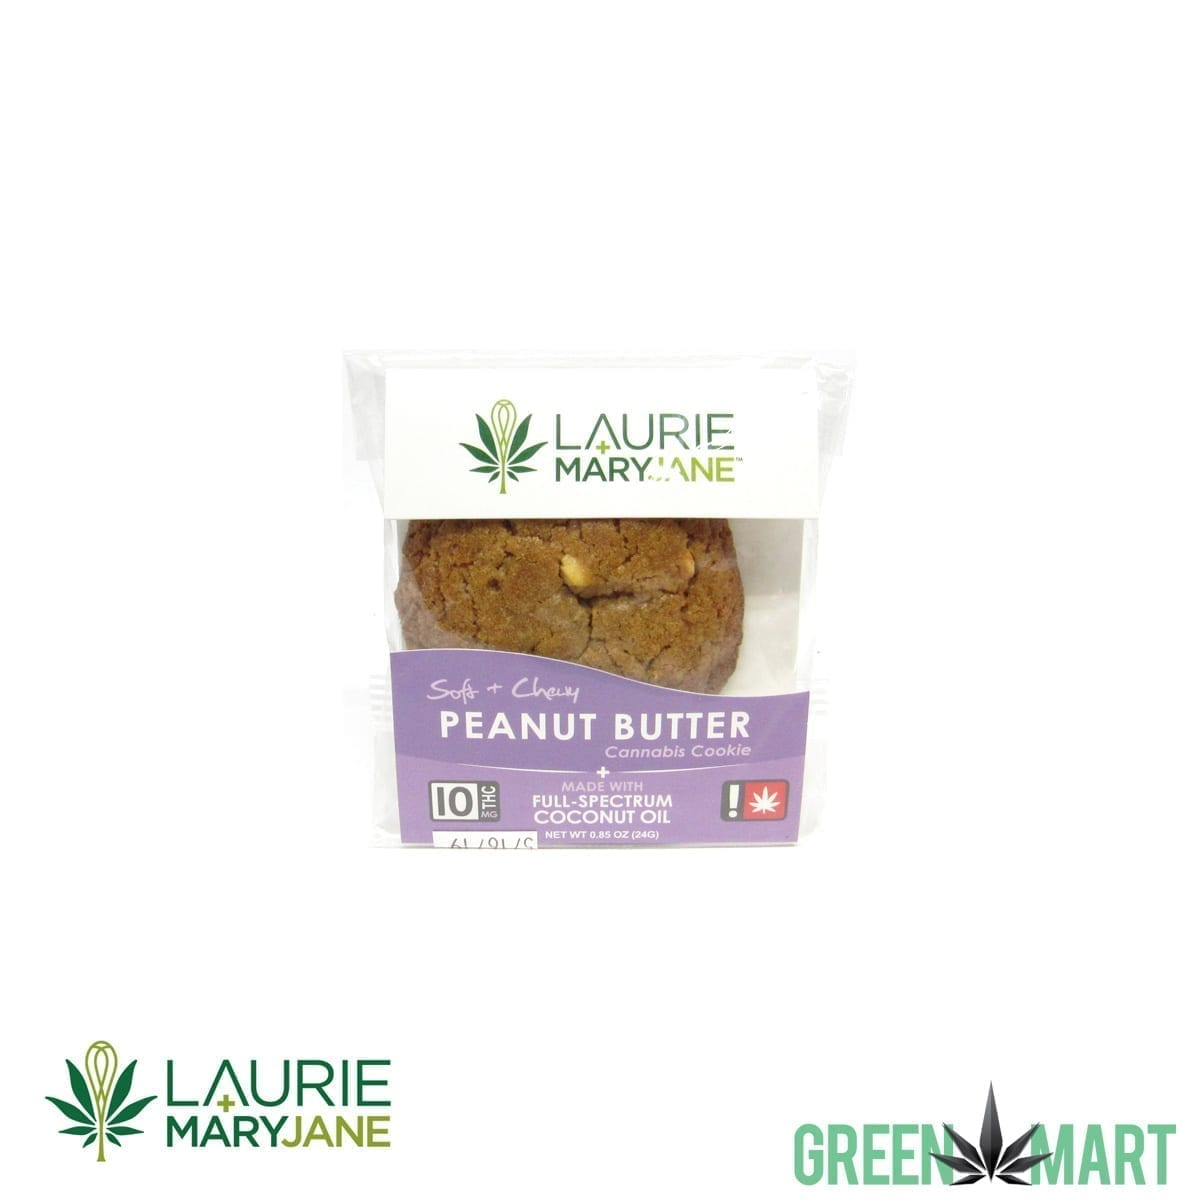 Laurie and Maryjane - Peanut Butter Cookie